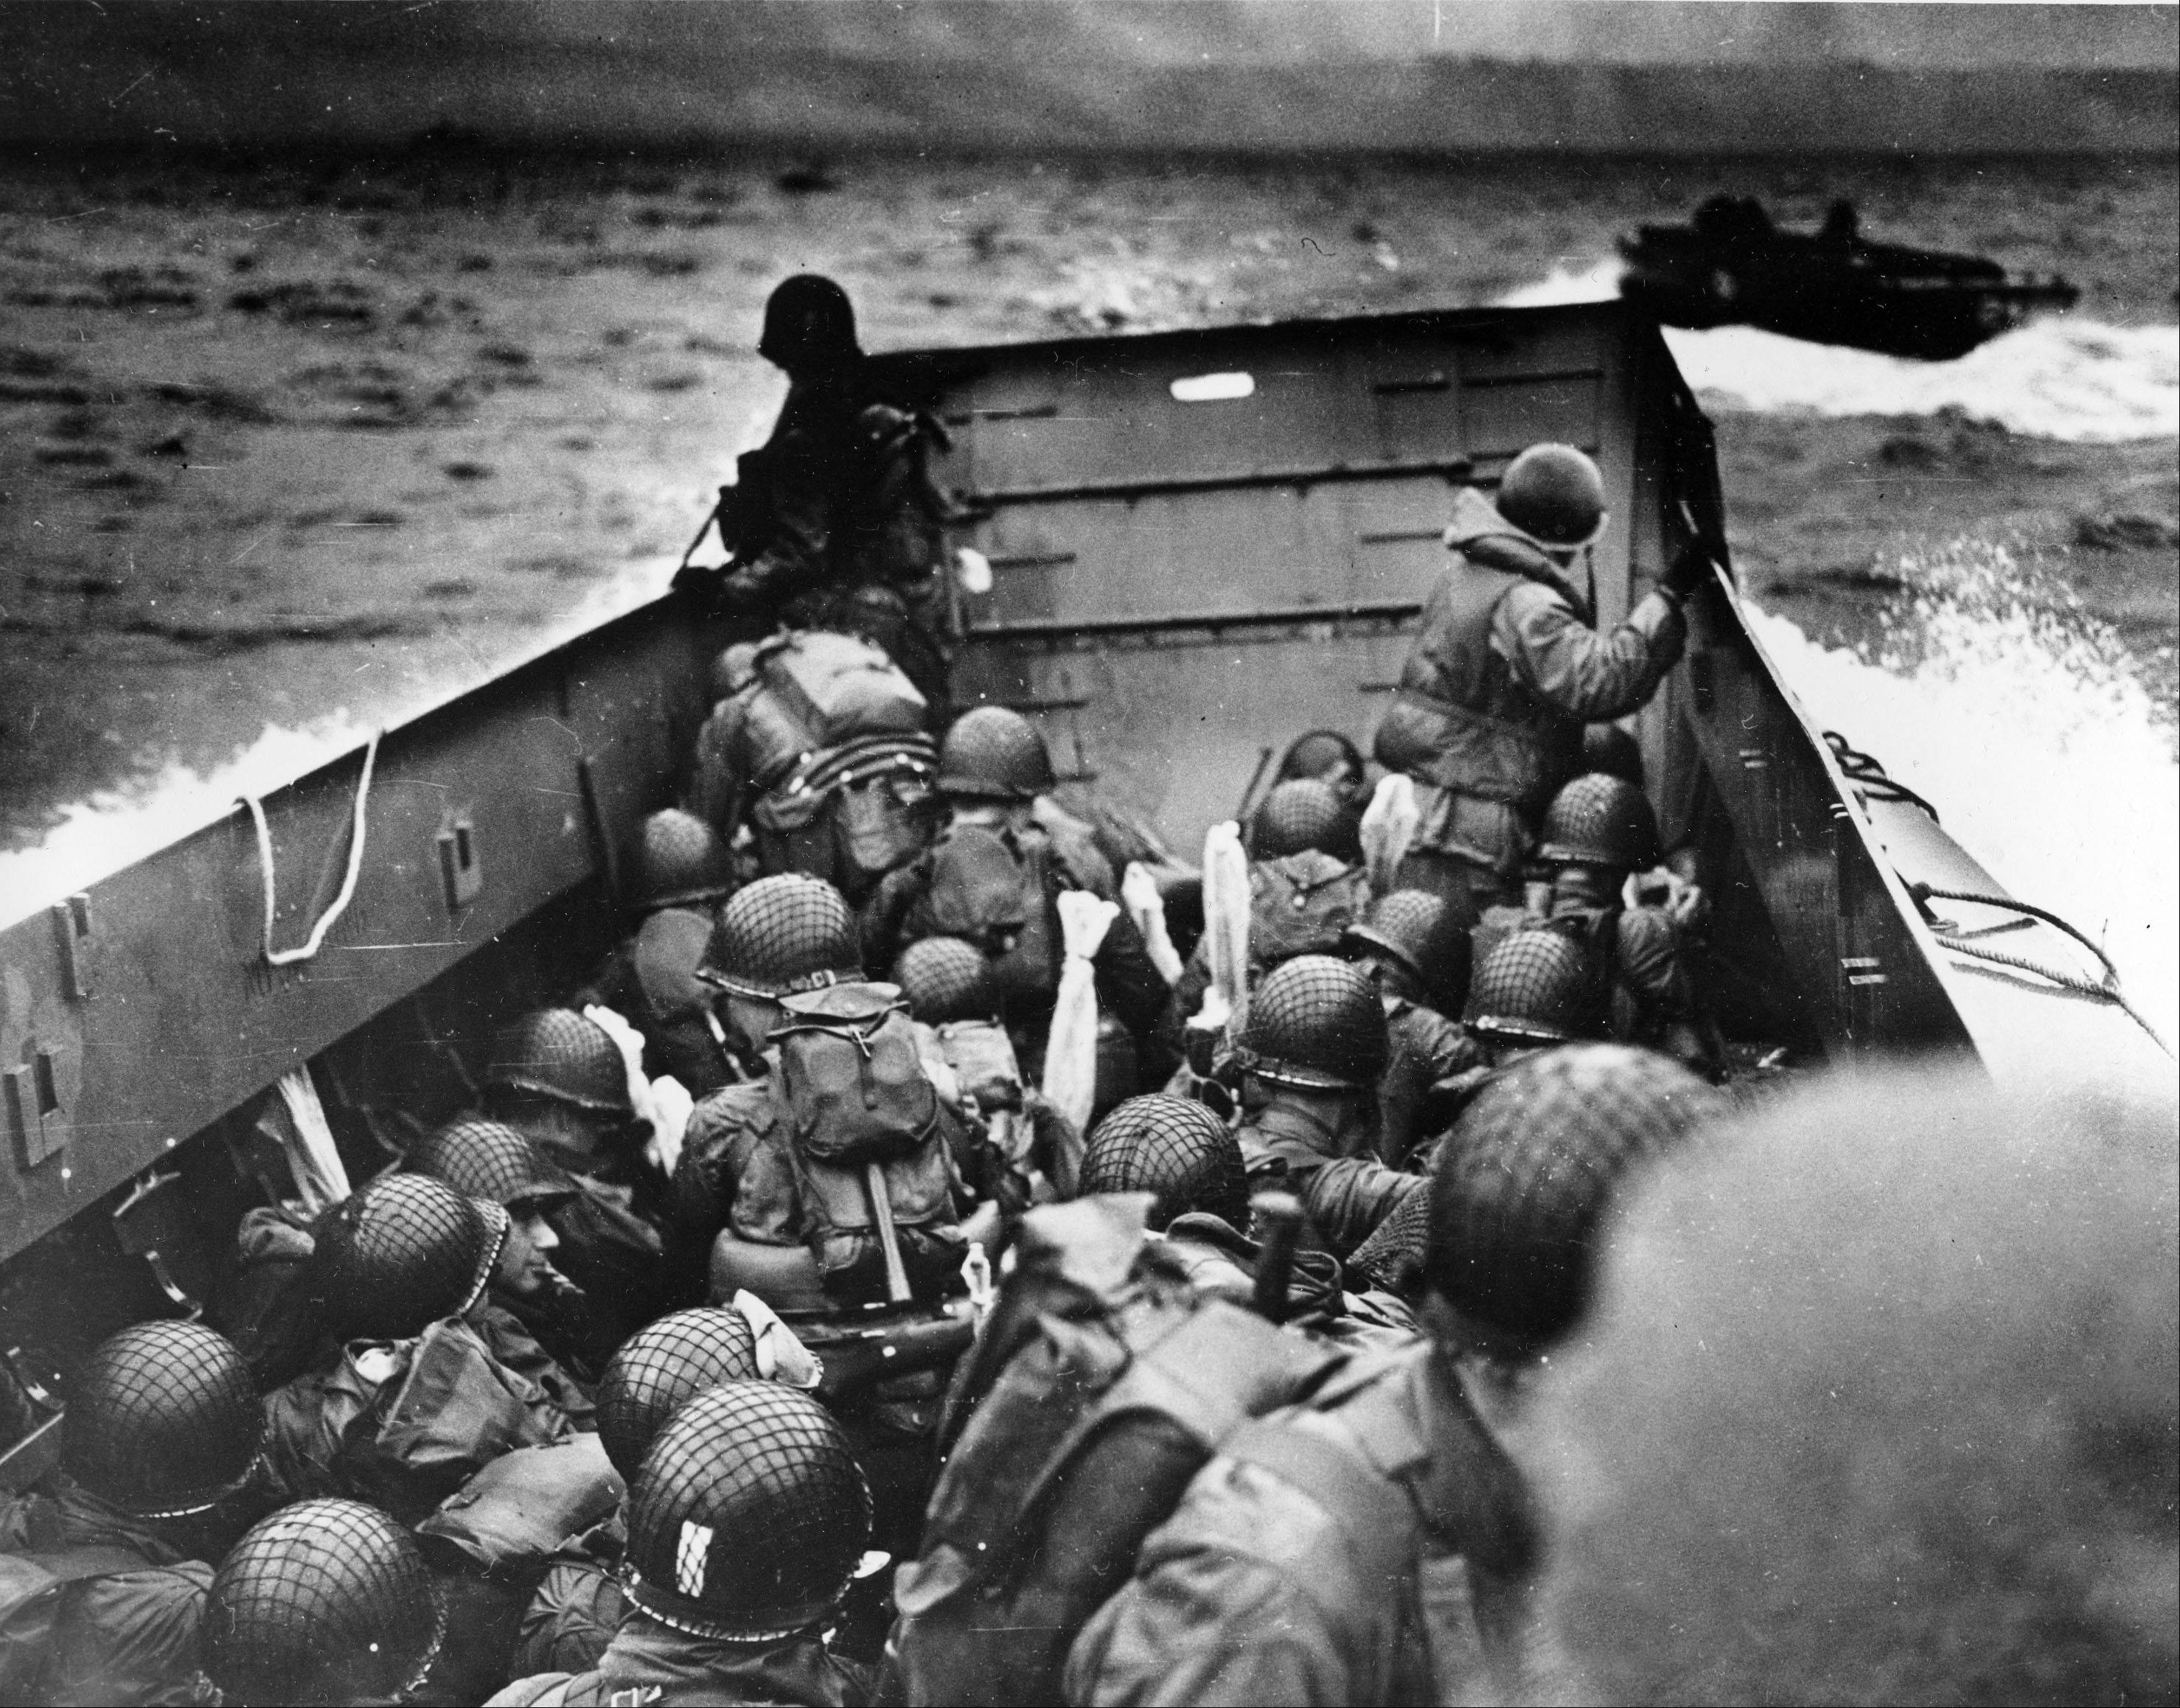 In this photo provided by the U.S. Coast Guard, a U.S. Coast Guard landing barge, tightly packed with helmeted soldiers, approaches the shore at Normandy, France, during initial Allied landing operations, on June 6, 1944.